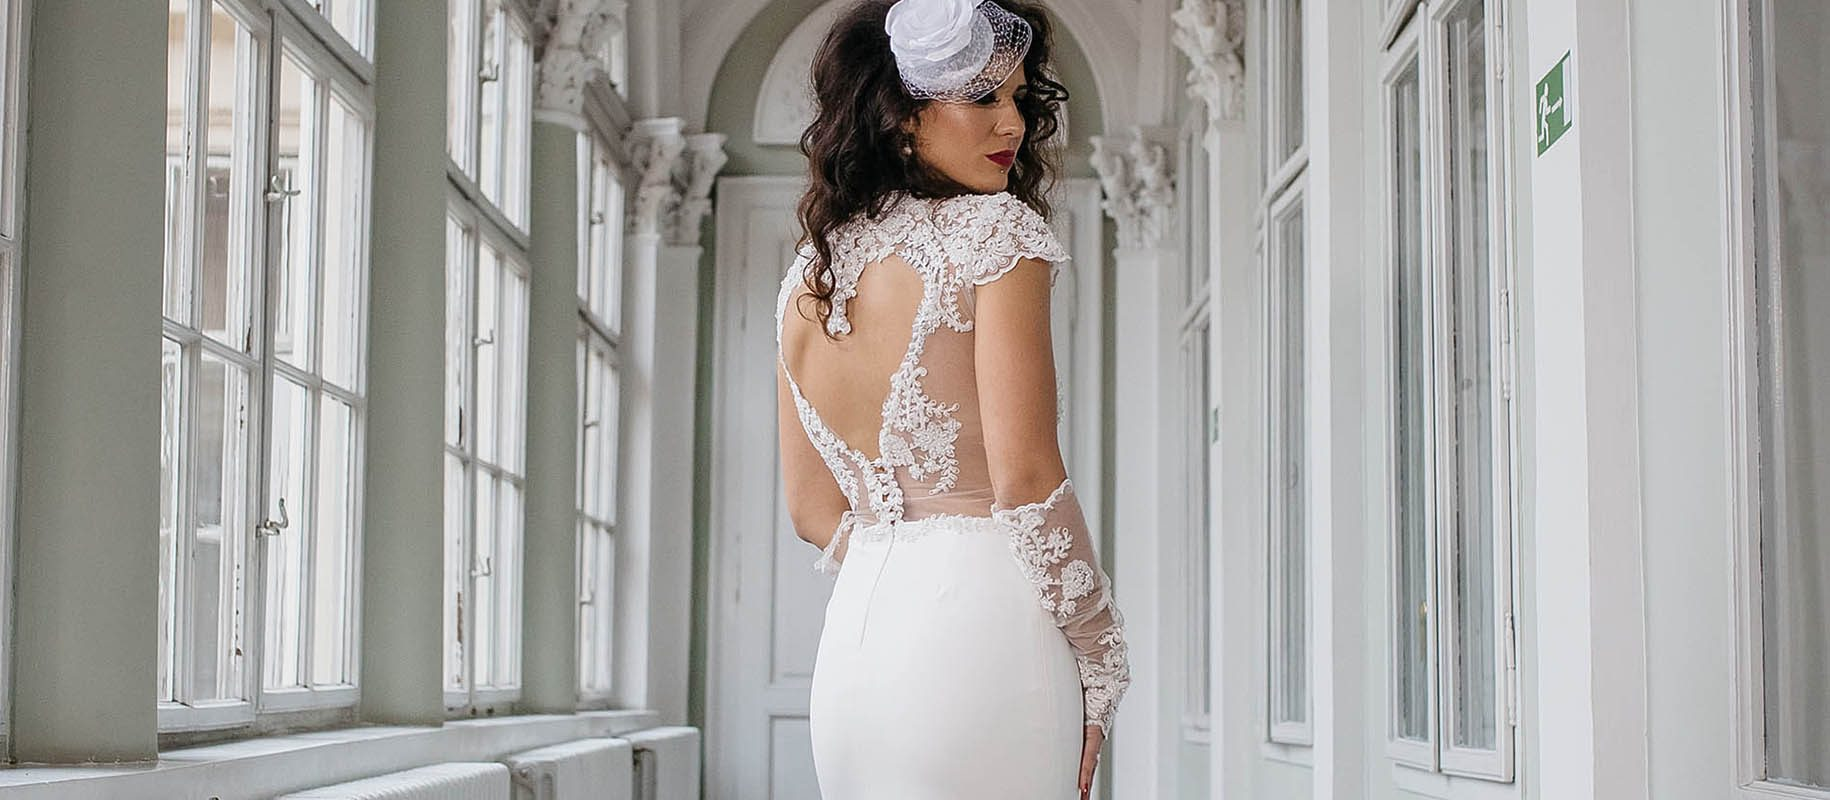 wedding dress collection by danijela bozic fashion designer